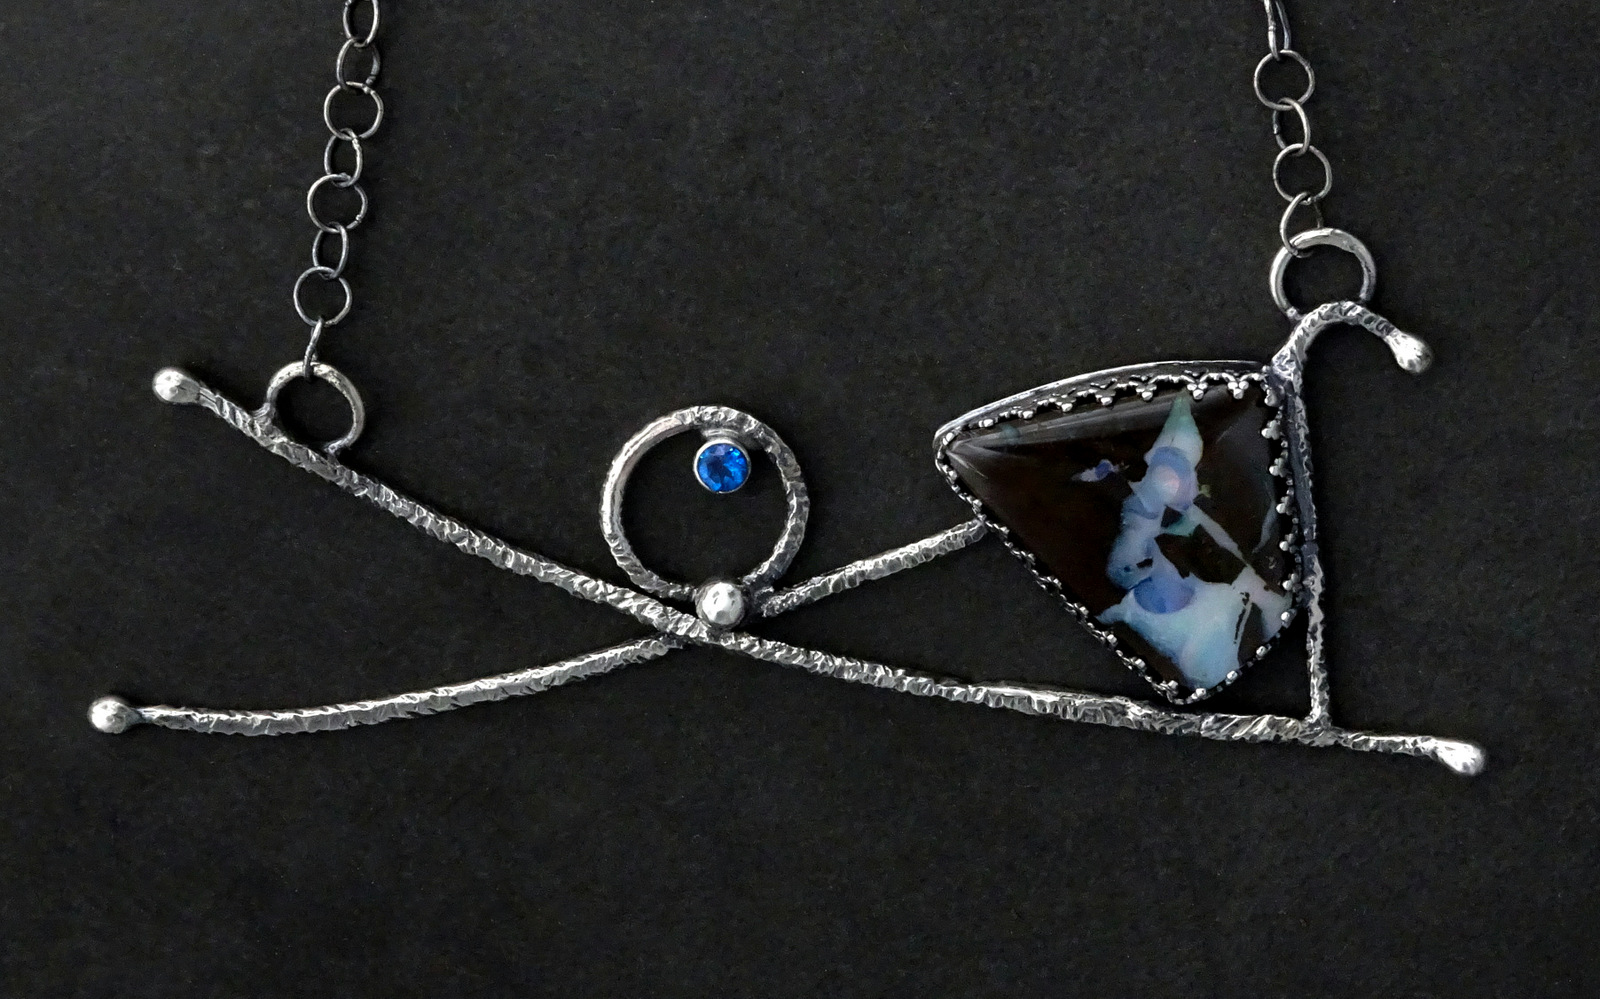 SMALL DANCING SPIRIT NECKLACE WITH MOTTLED BLUE/BLACK STONE,  Pendant - 4.5 x 1.5 inches, Chain Length - 20 inches